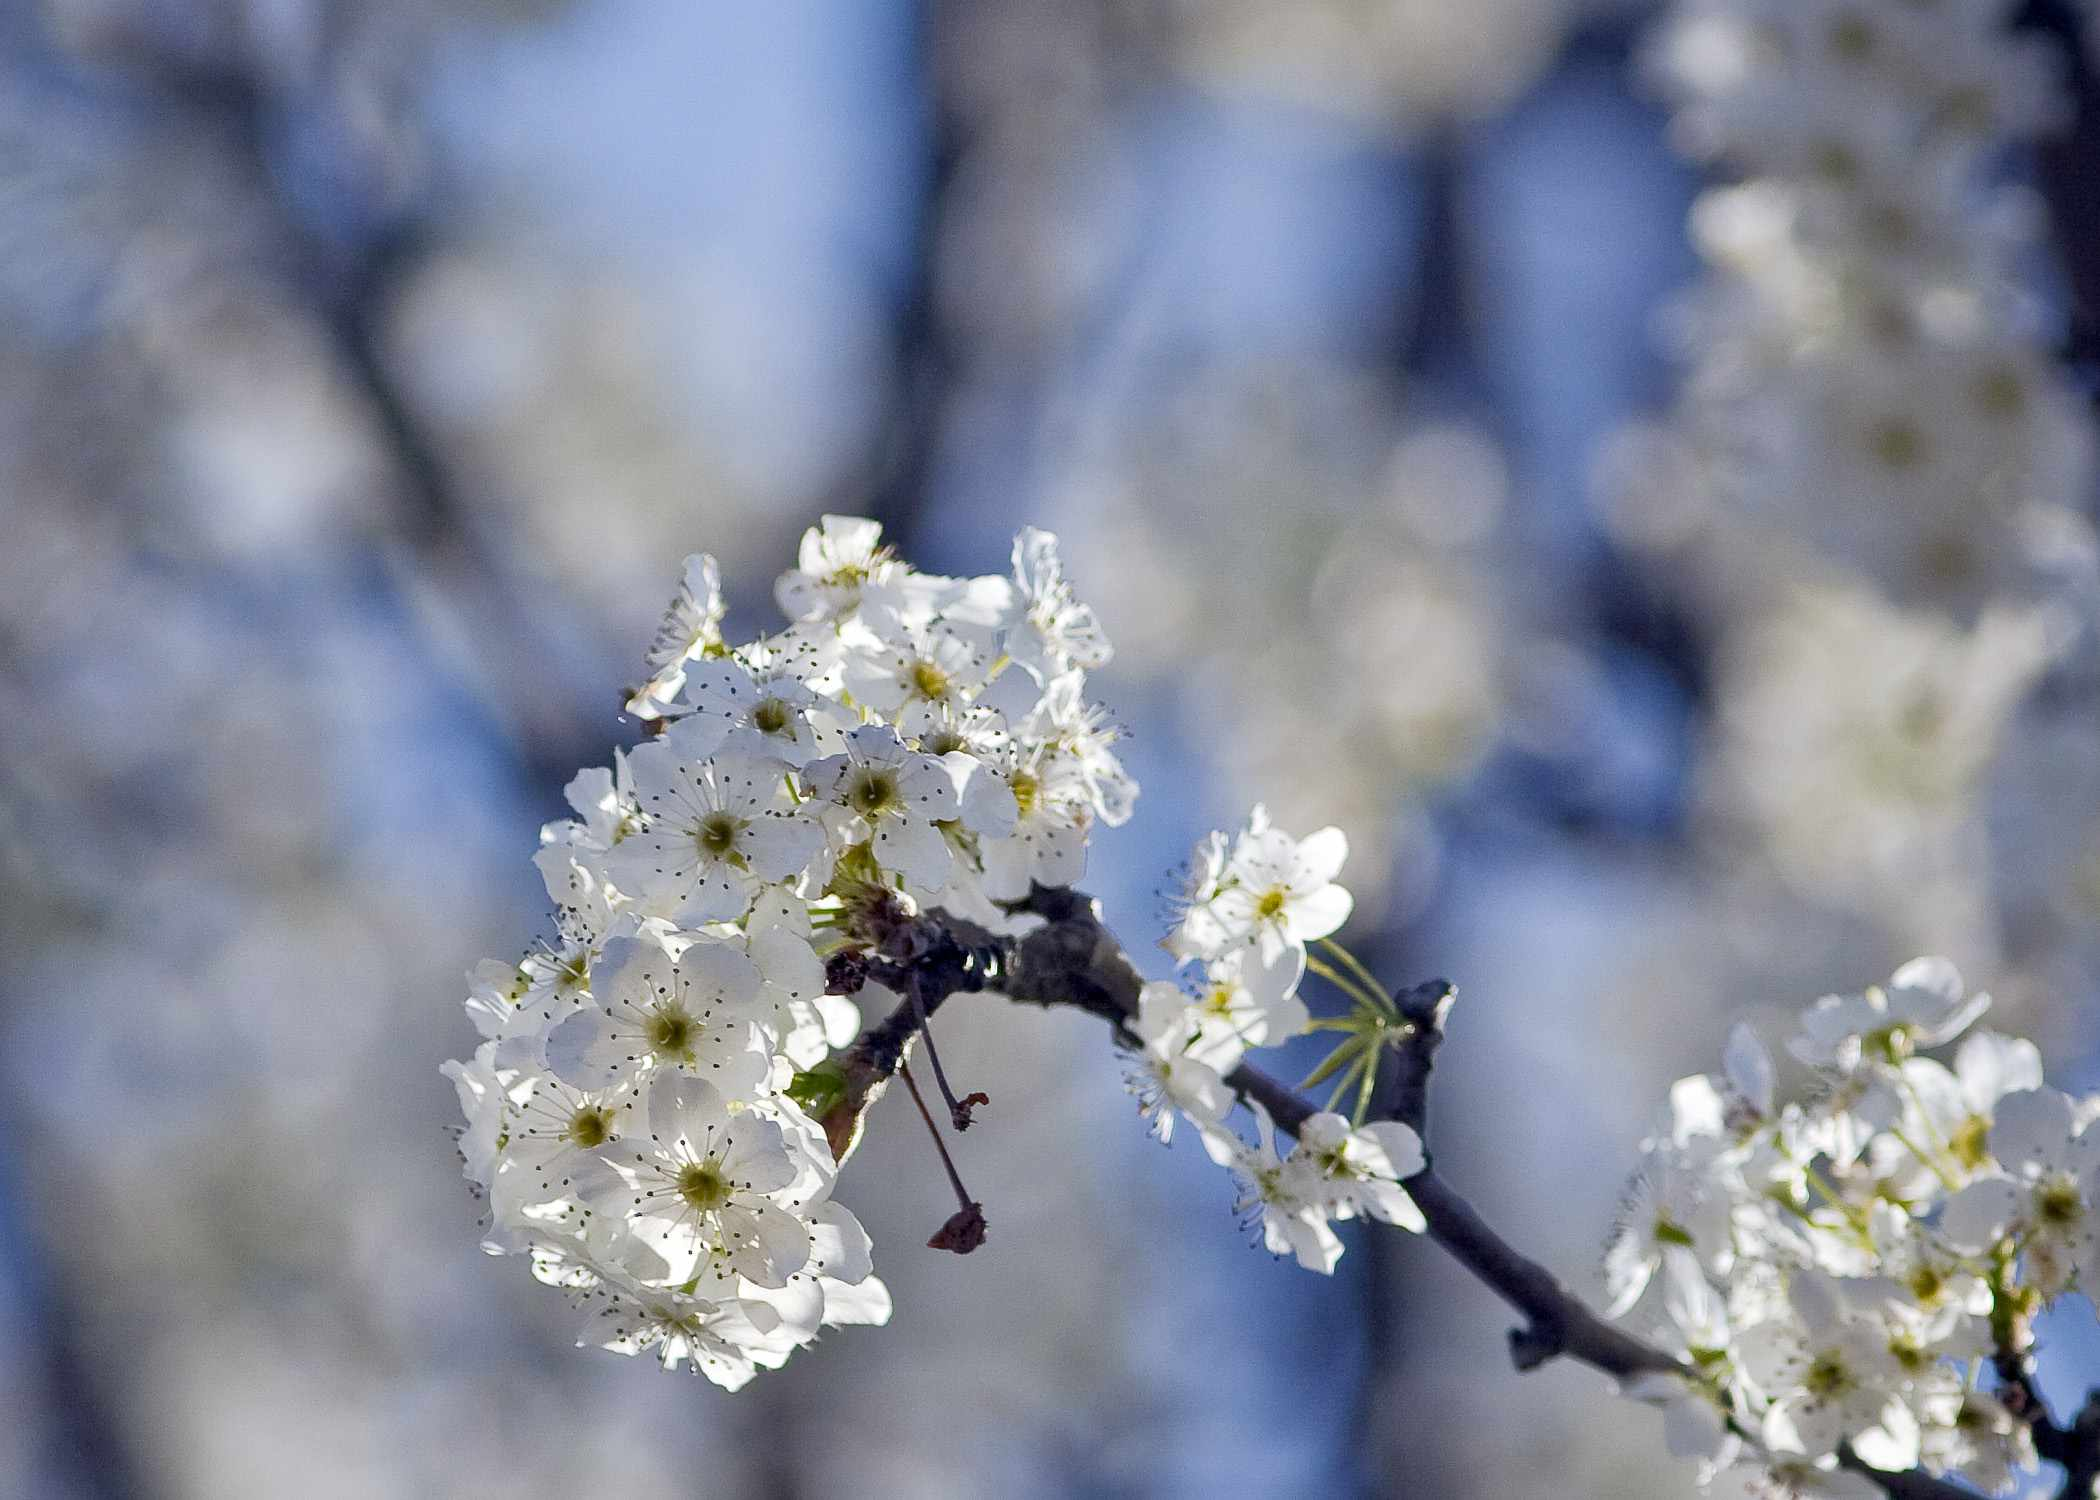 Close up of blossoms on an Aristocrat Callery pear tree.